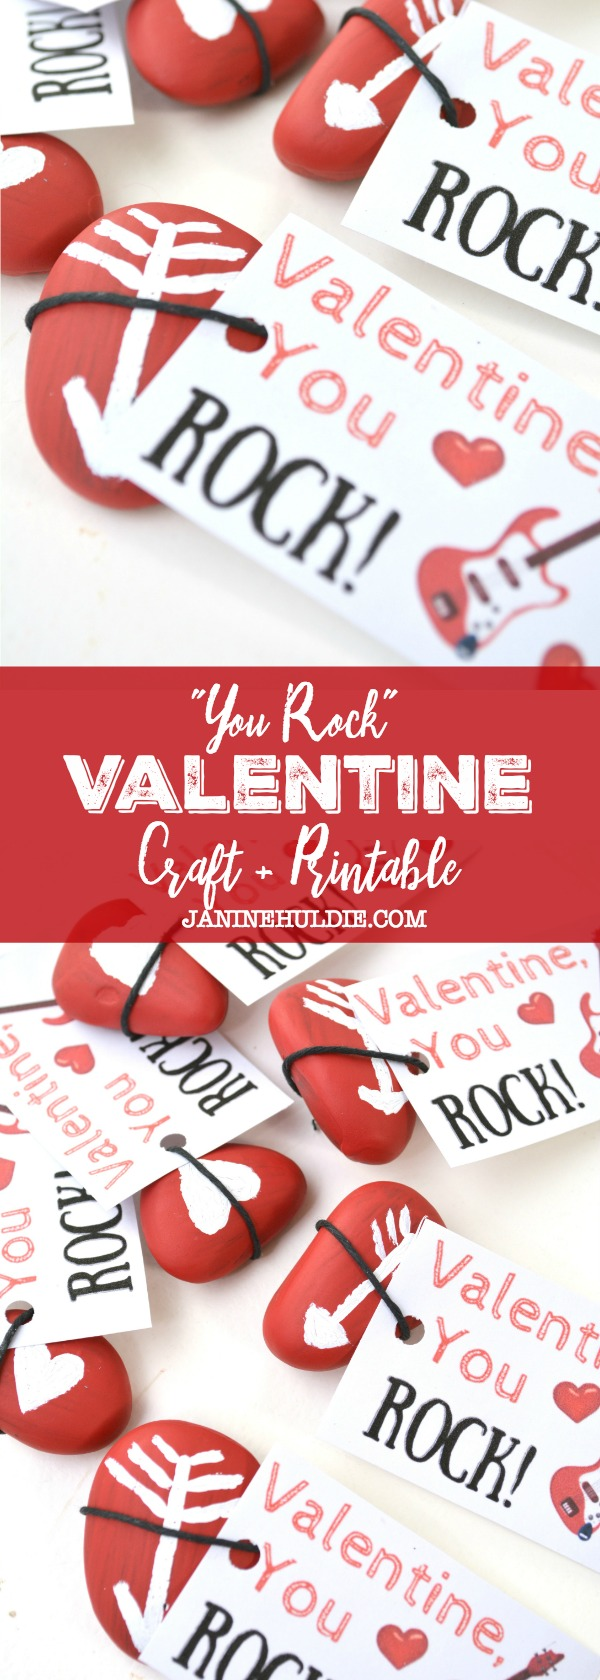 You Rock Valentine Craft and Printable